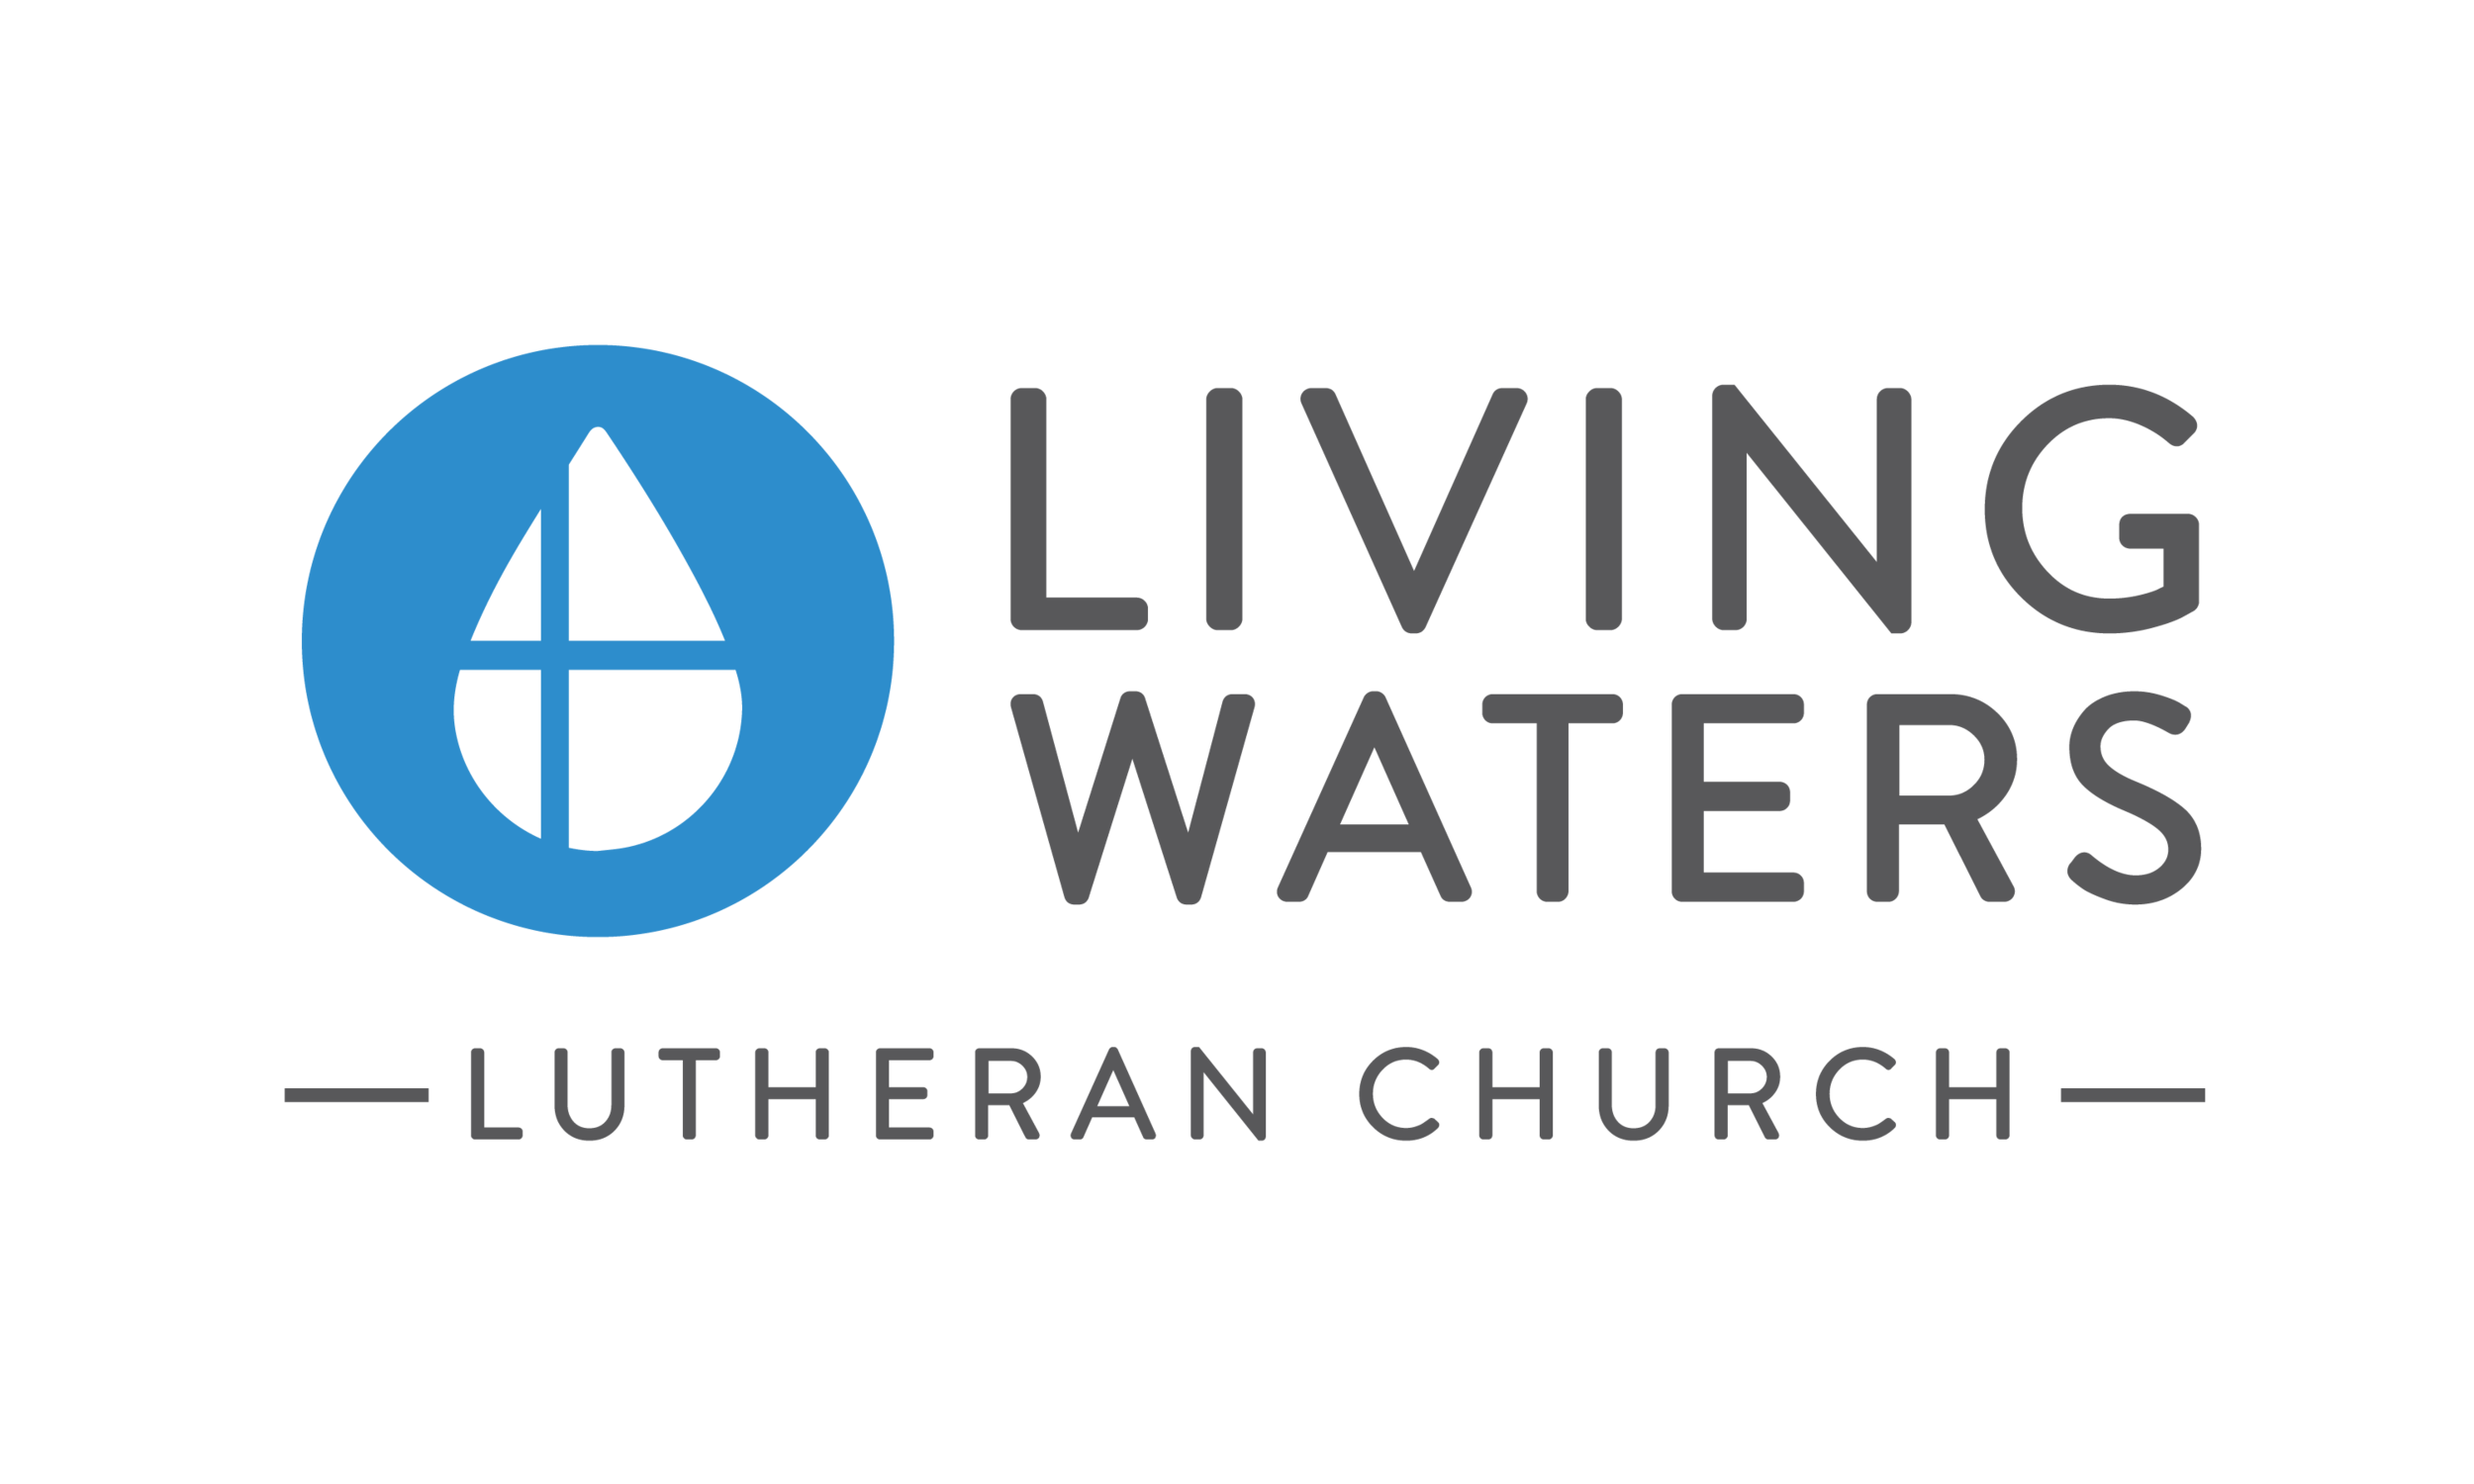 At Living Waters, we're about relationships. We believe God has created our church to help people develop three types of relationships: up (knowing God), in (growing together), and out (reaching out).